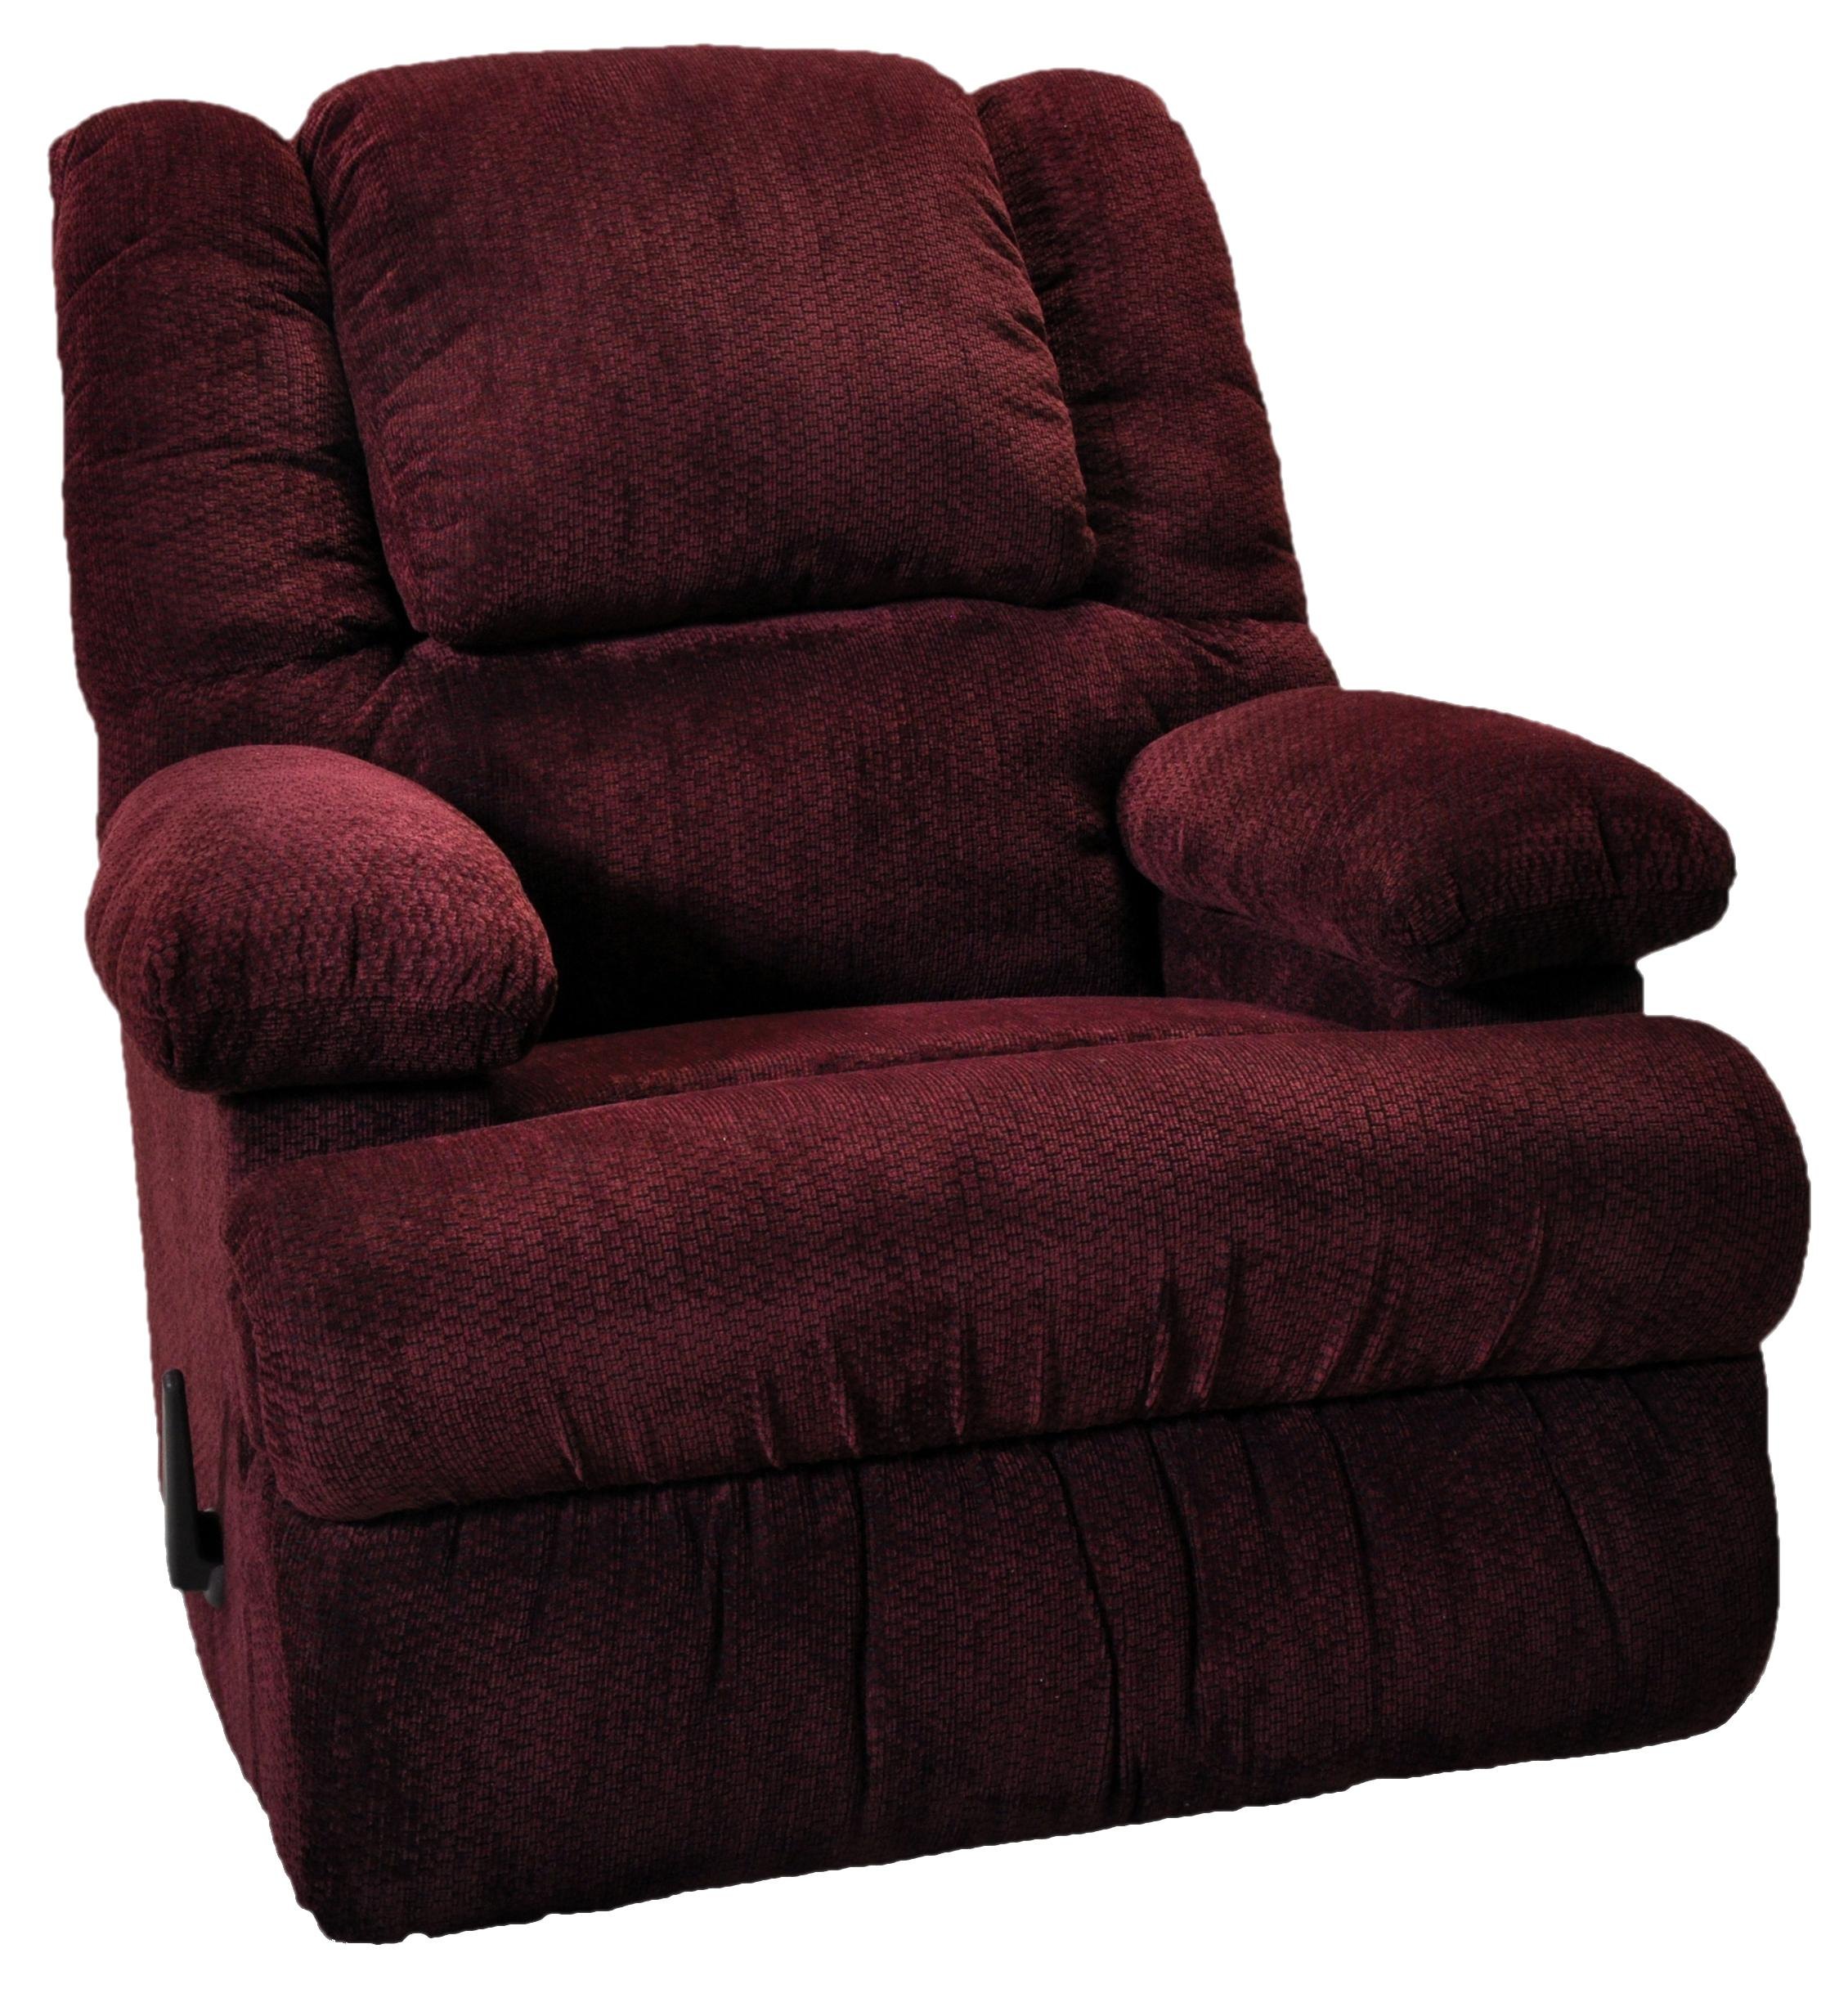 Clayton Chaise Rocker Recliner by Franklin at Wilcox Furniture